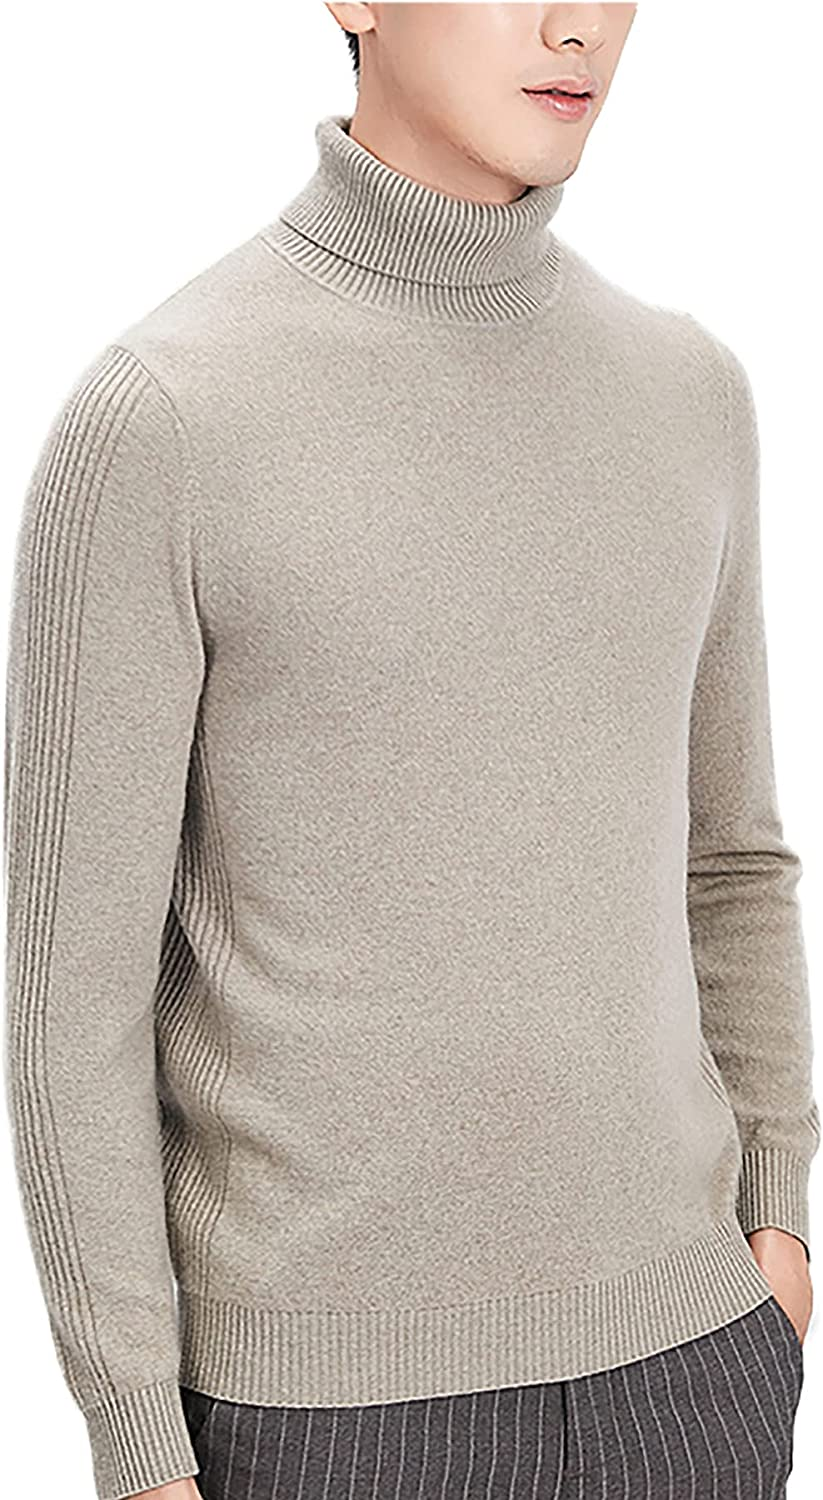 LZJDS Men's Cashmere Slim Fit Turtleneck Sweater Casual Knitted Pullover Sweaters